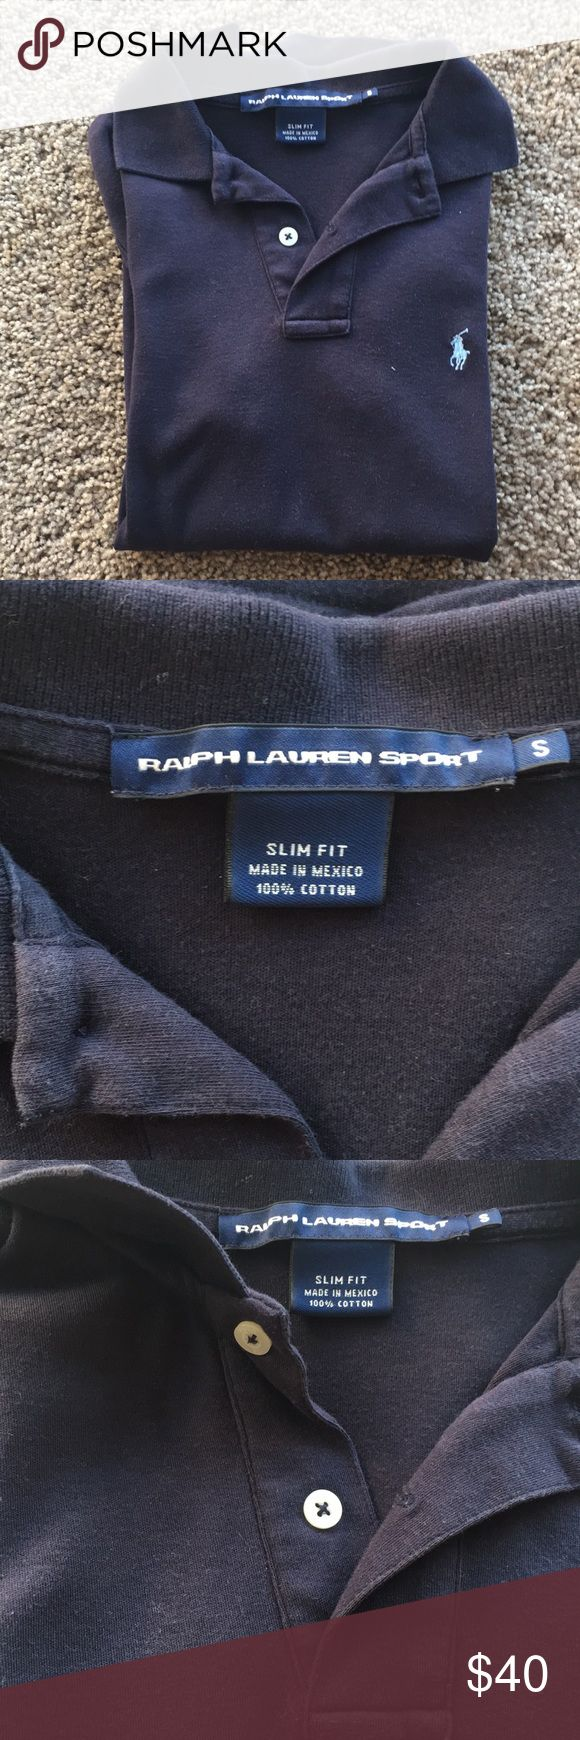 Slim fit Ralph Lauren polo Slim fit navy blue Ralph Lauren polo, light blue logo.  Ribbed Polo collar. Two-button placket. Short sleeves with ribbed armbands.  Signature embroidered pony accents the left chest.  Machine washable. Imported.  Light wear.  Size small Ralph Lauren Tops Button Down Shirts